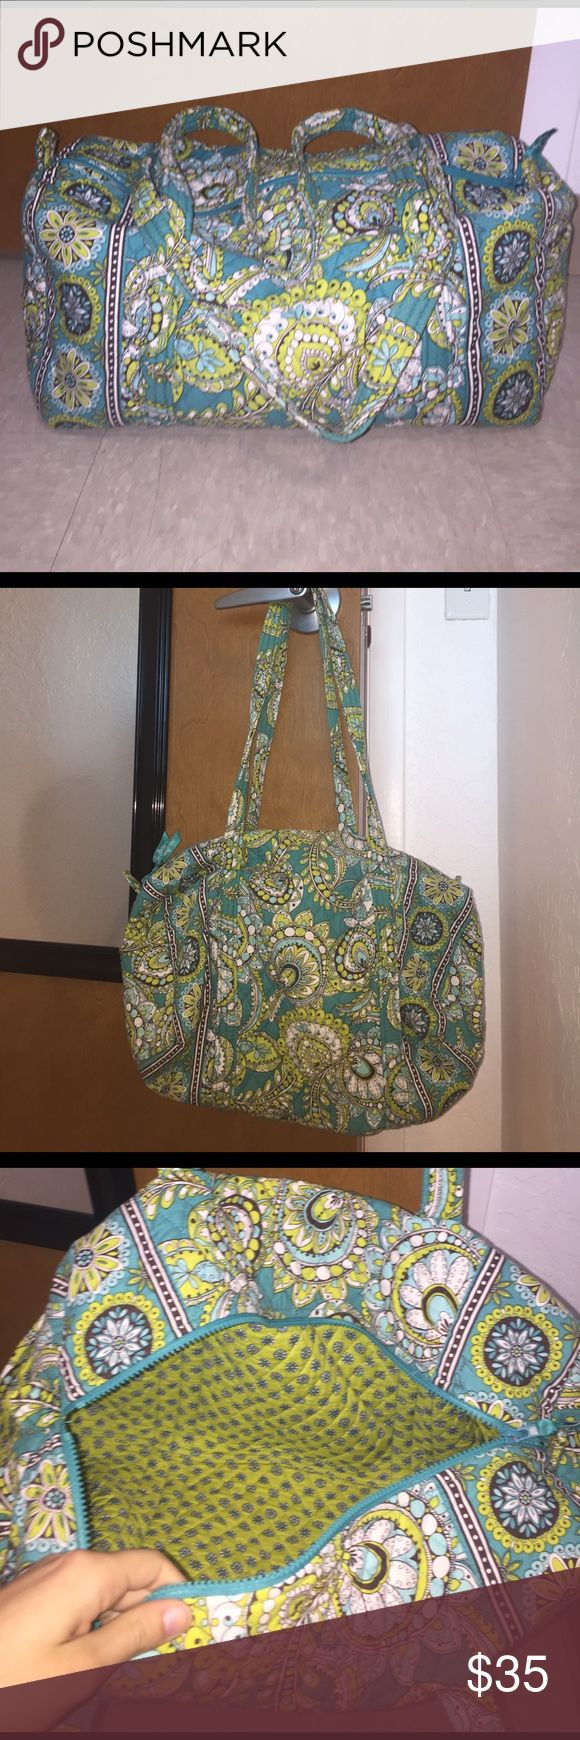 Small Vera Bradley Duffel Bag This used weekender bag is in great condition, like new! No marks or scuffs. Such a beautiful pattern as well!  Vera Bradley Bags Travel Bags